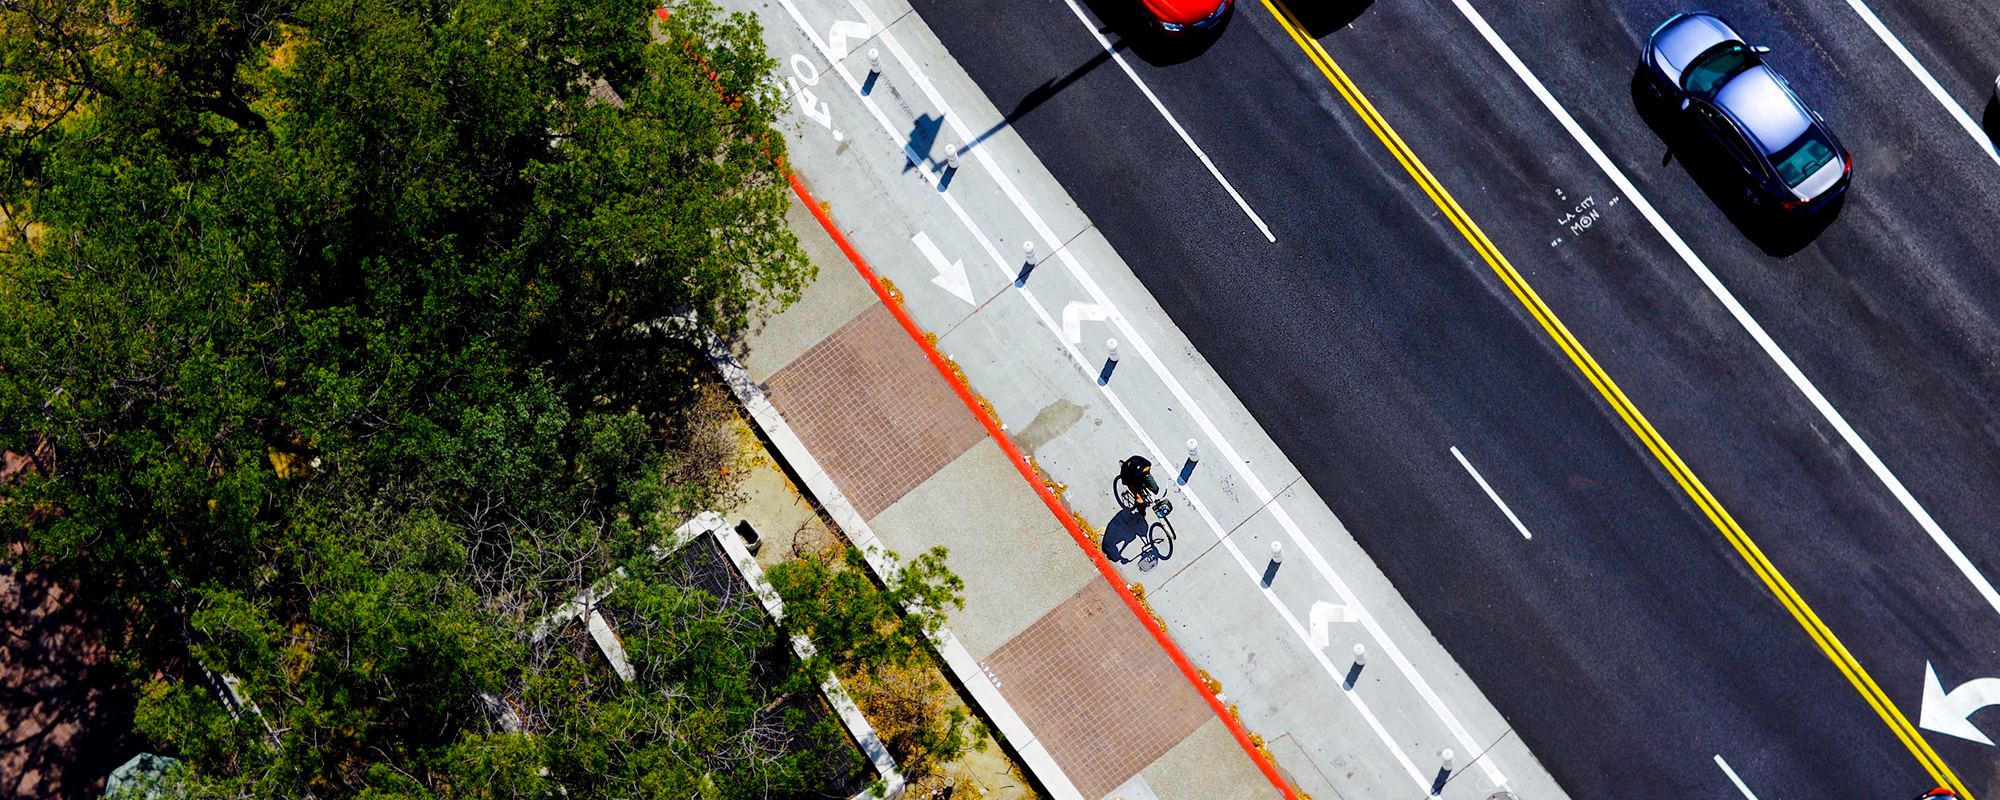 aerial view of protected bike lane